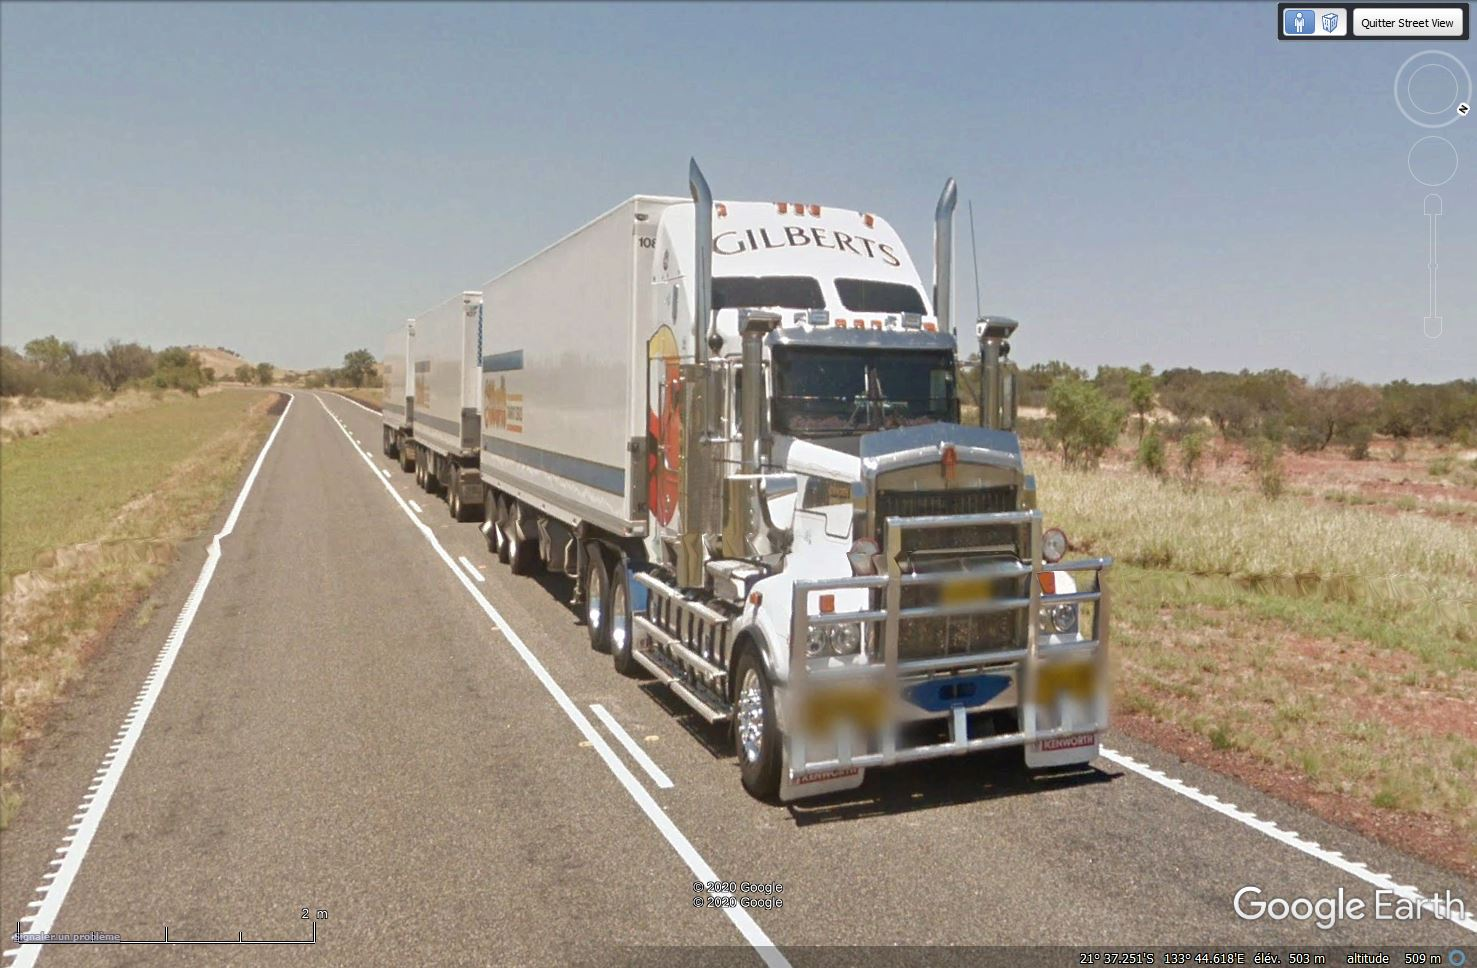 Camions australiens (road trains) - Page 6 Tsge1350